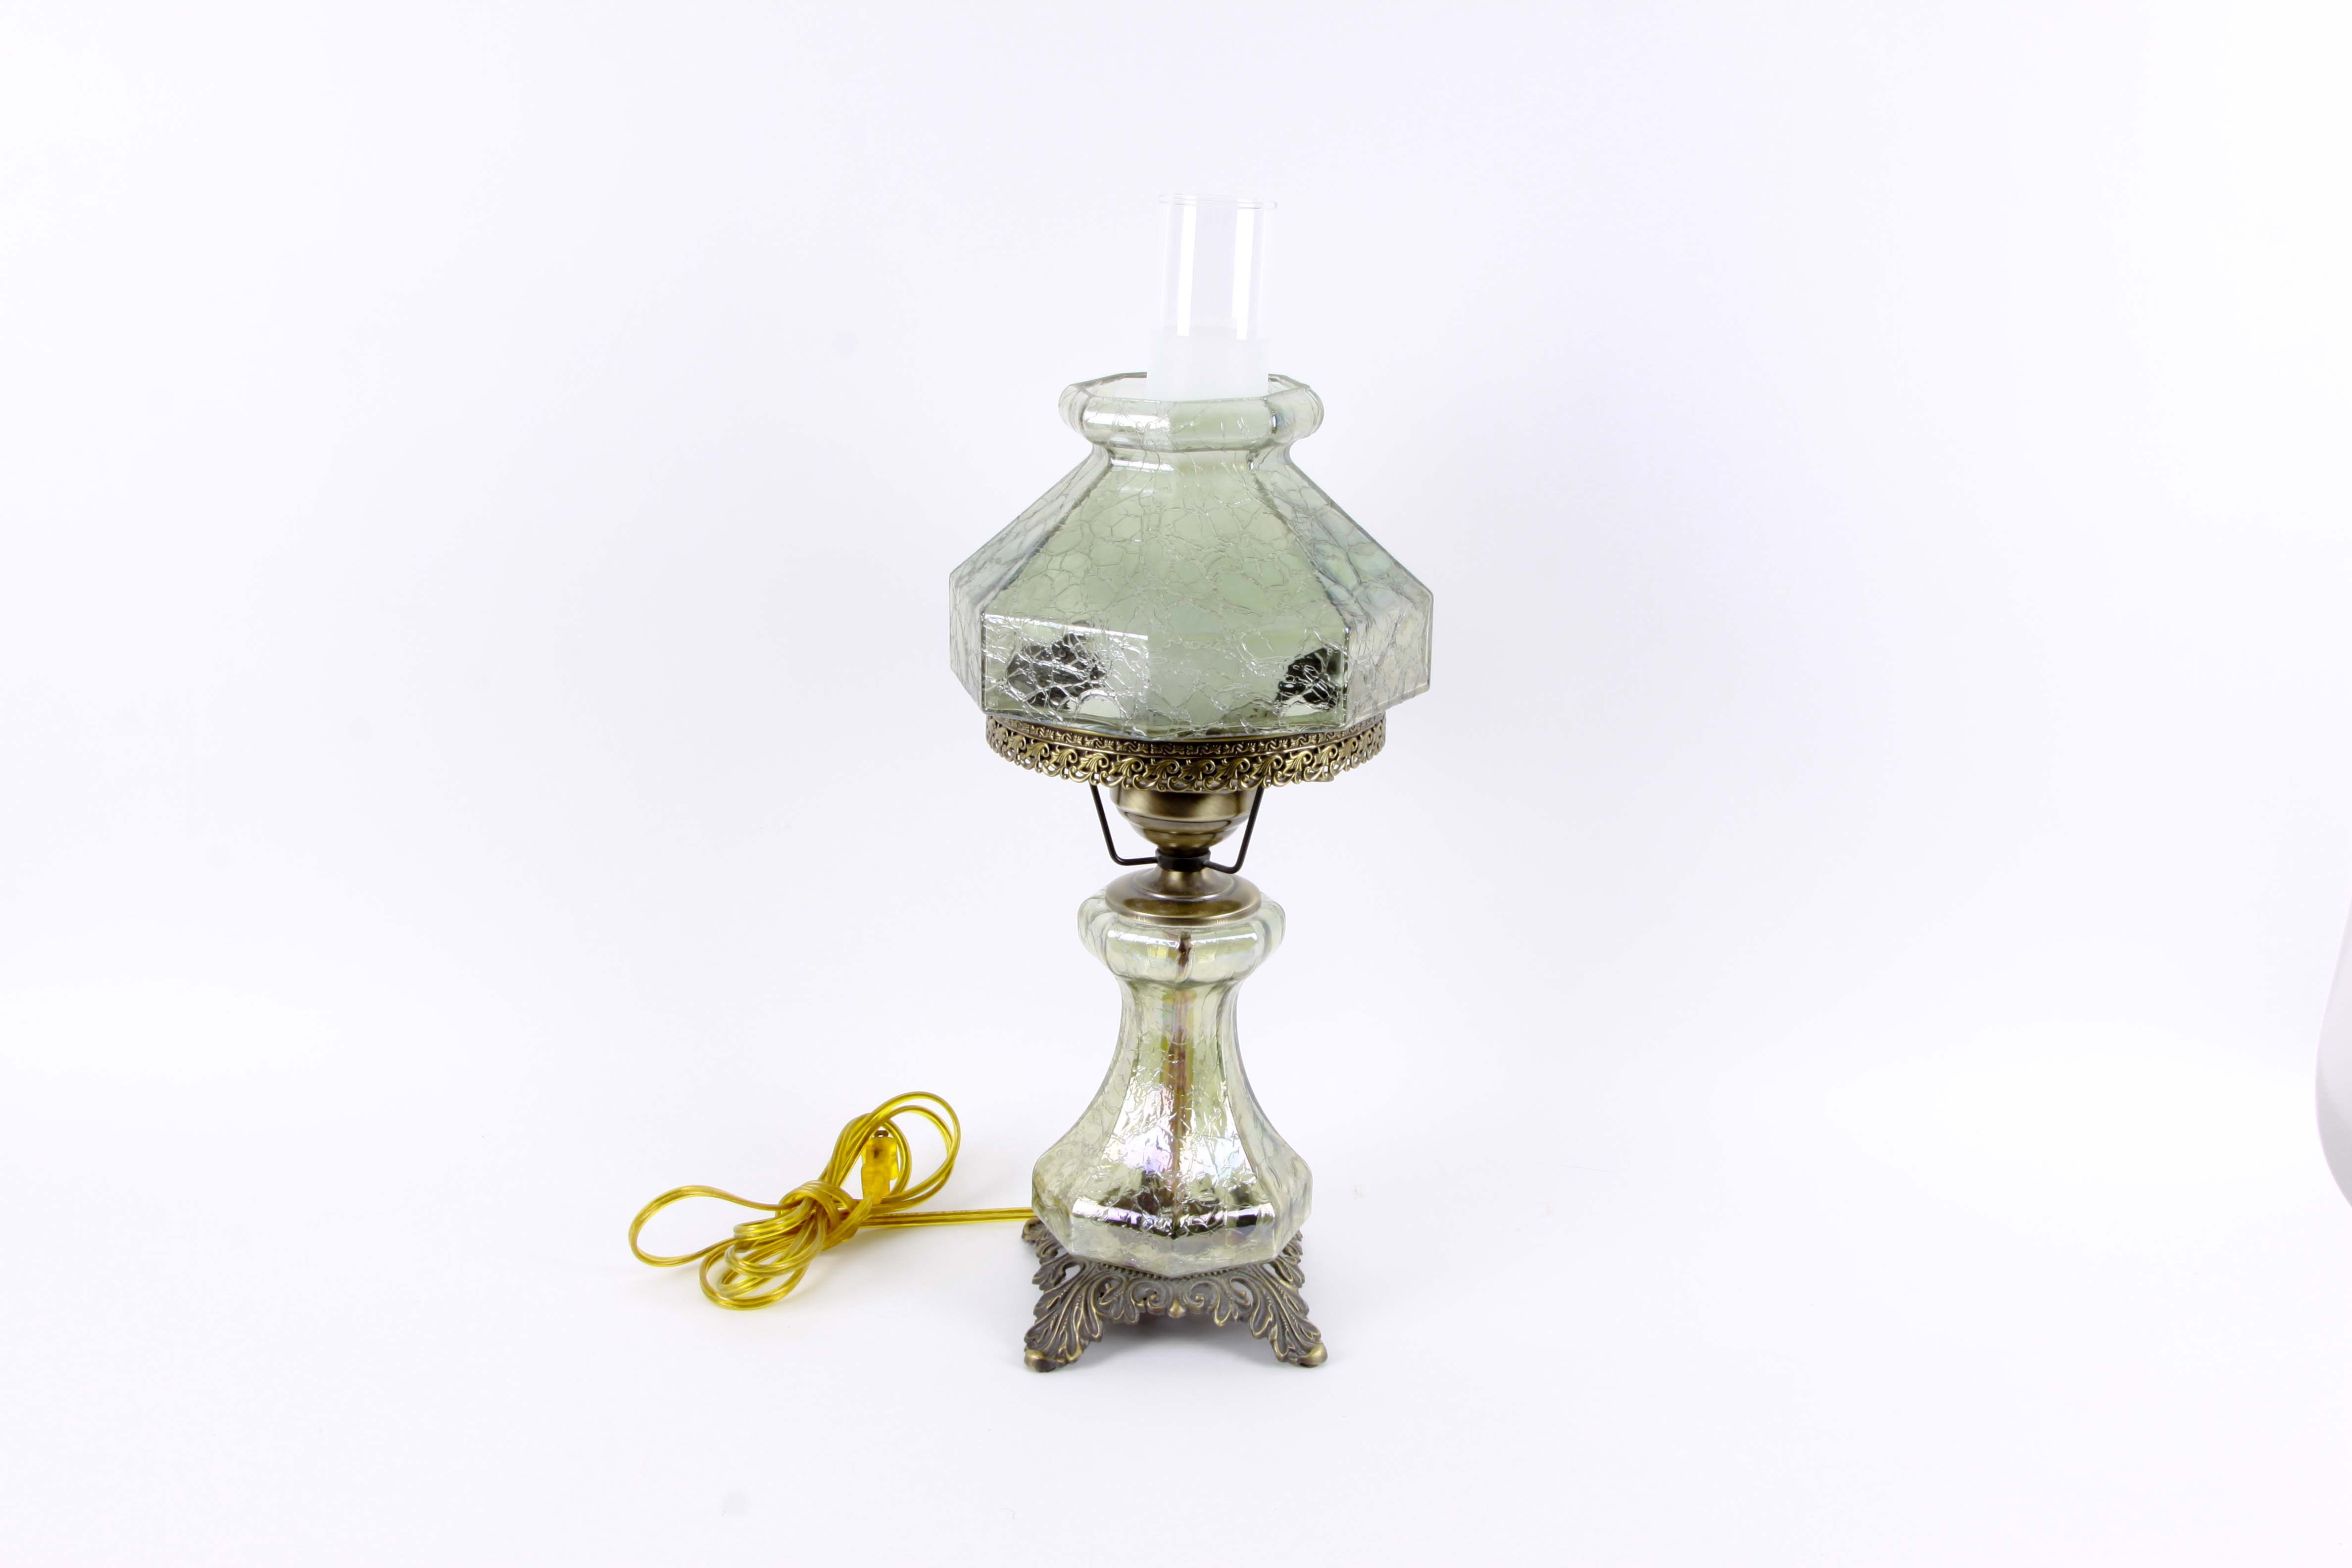 Vintage Style Hurricane Electric Oil Lamp